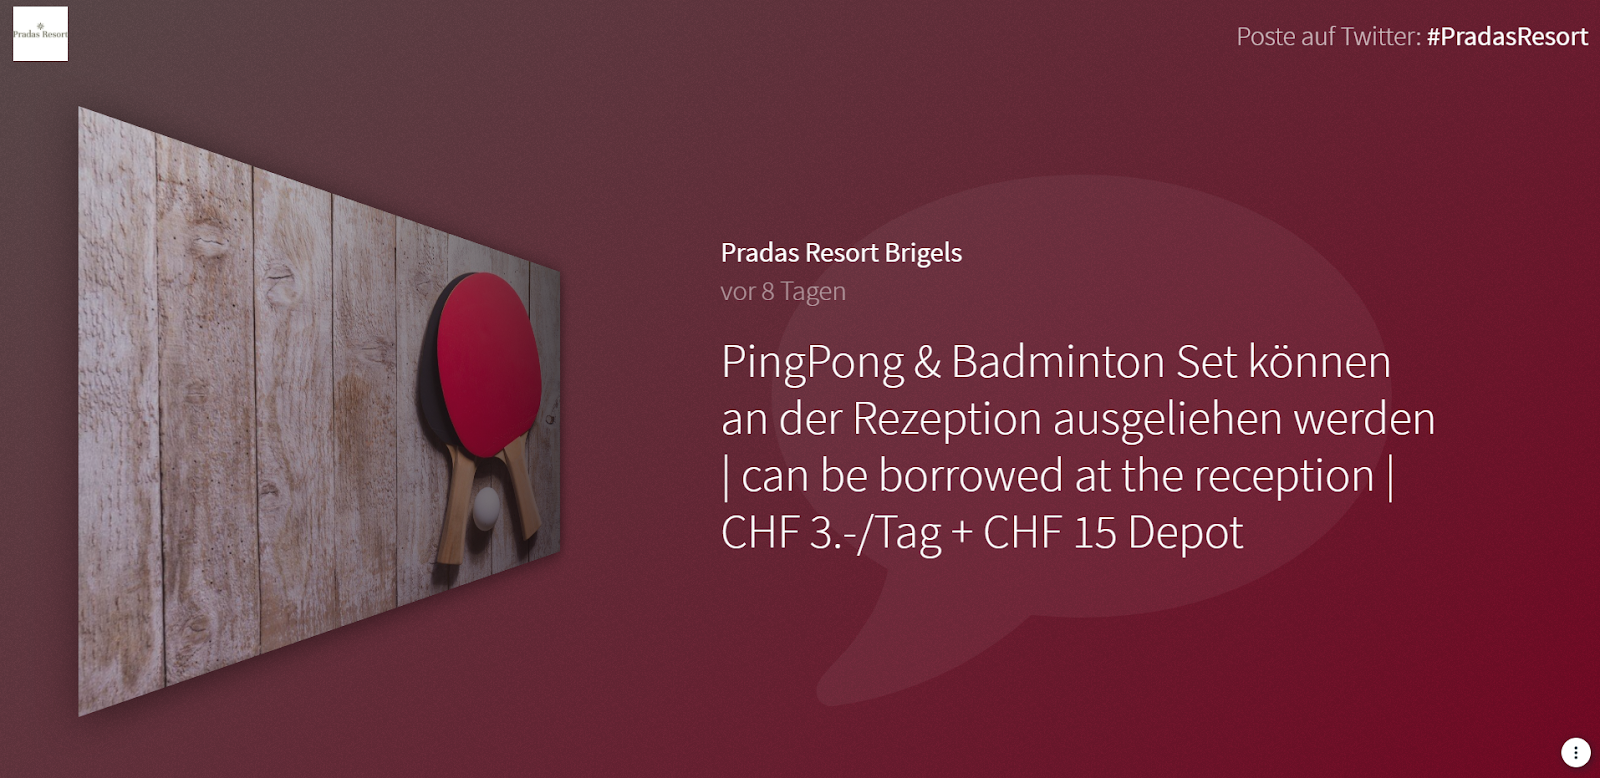 """Screenshot of Pradas Resort's social media wall. The image shows a photo of a person skiing, along with the caption """"PingPong & Badminton Set können an der Rezeption ausgeliehen werden / can be borrowed at the reception / CHF 3./tag + CHF 15 Depot"""""""